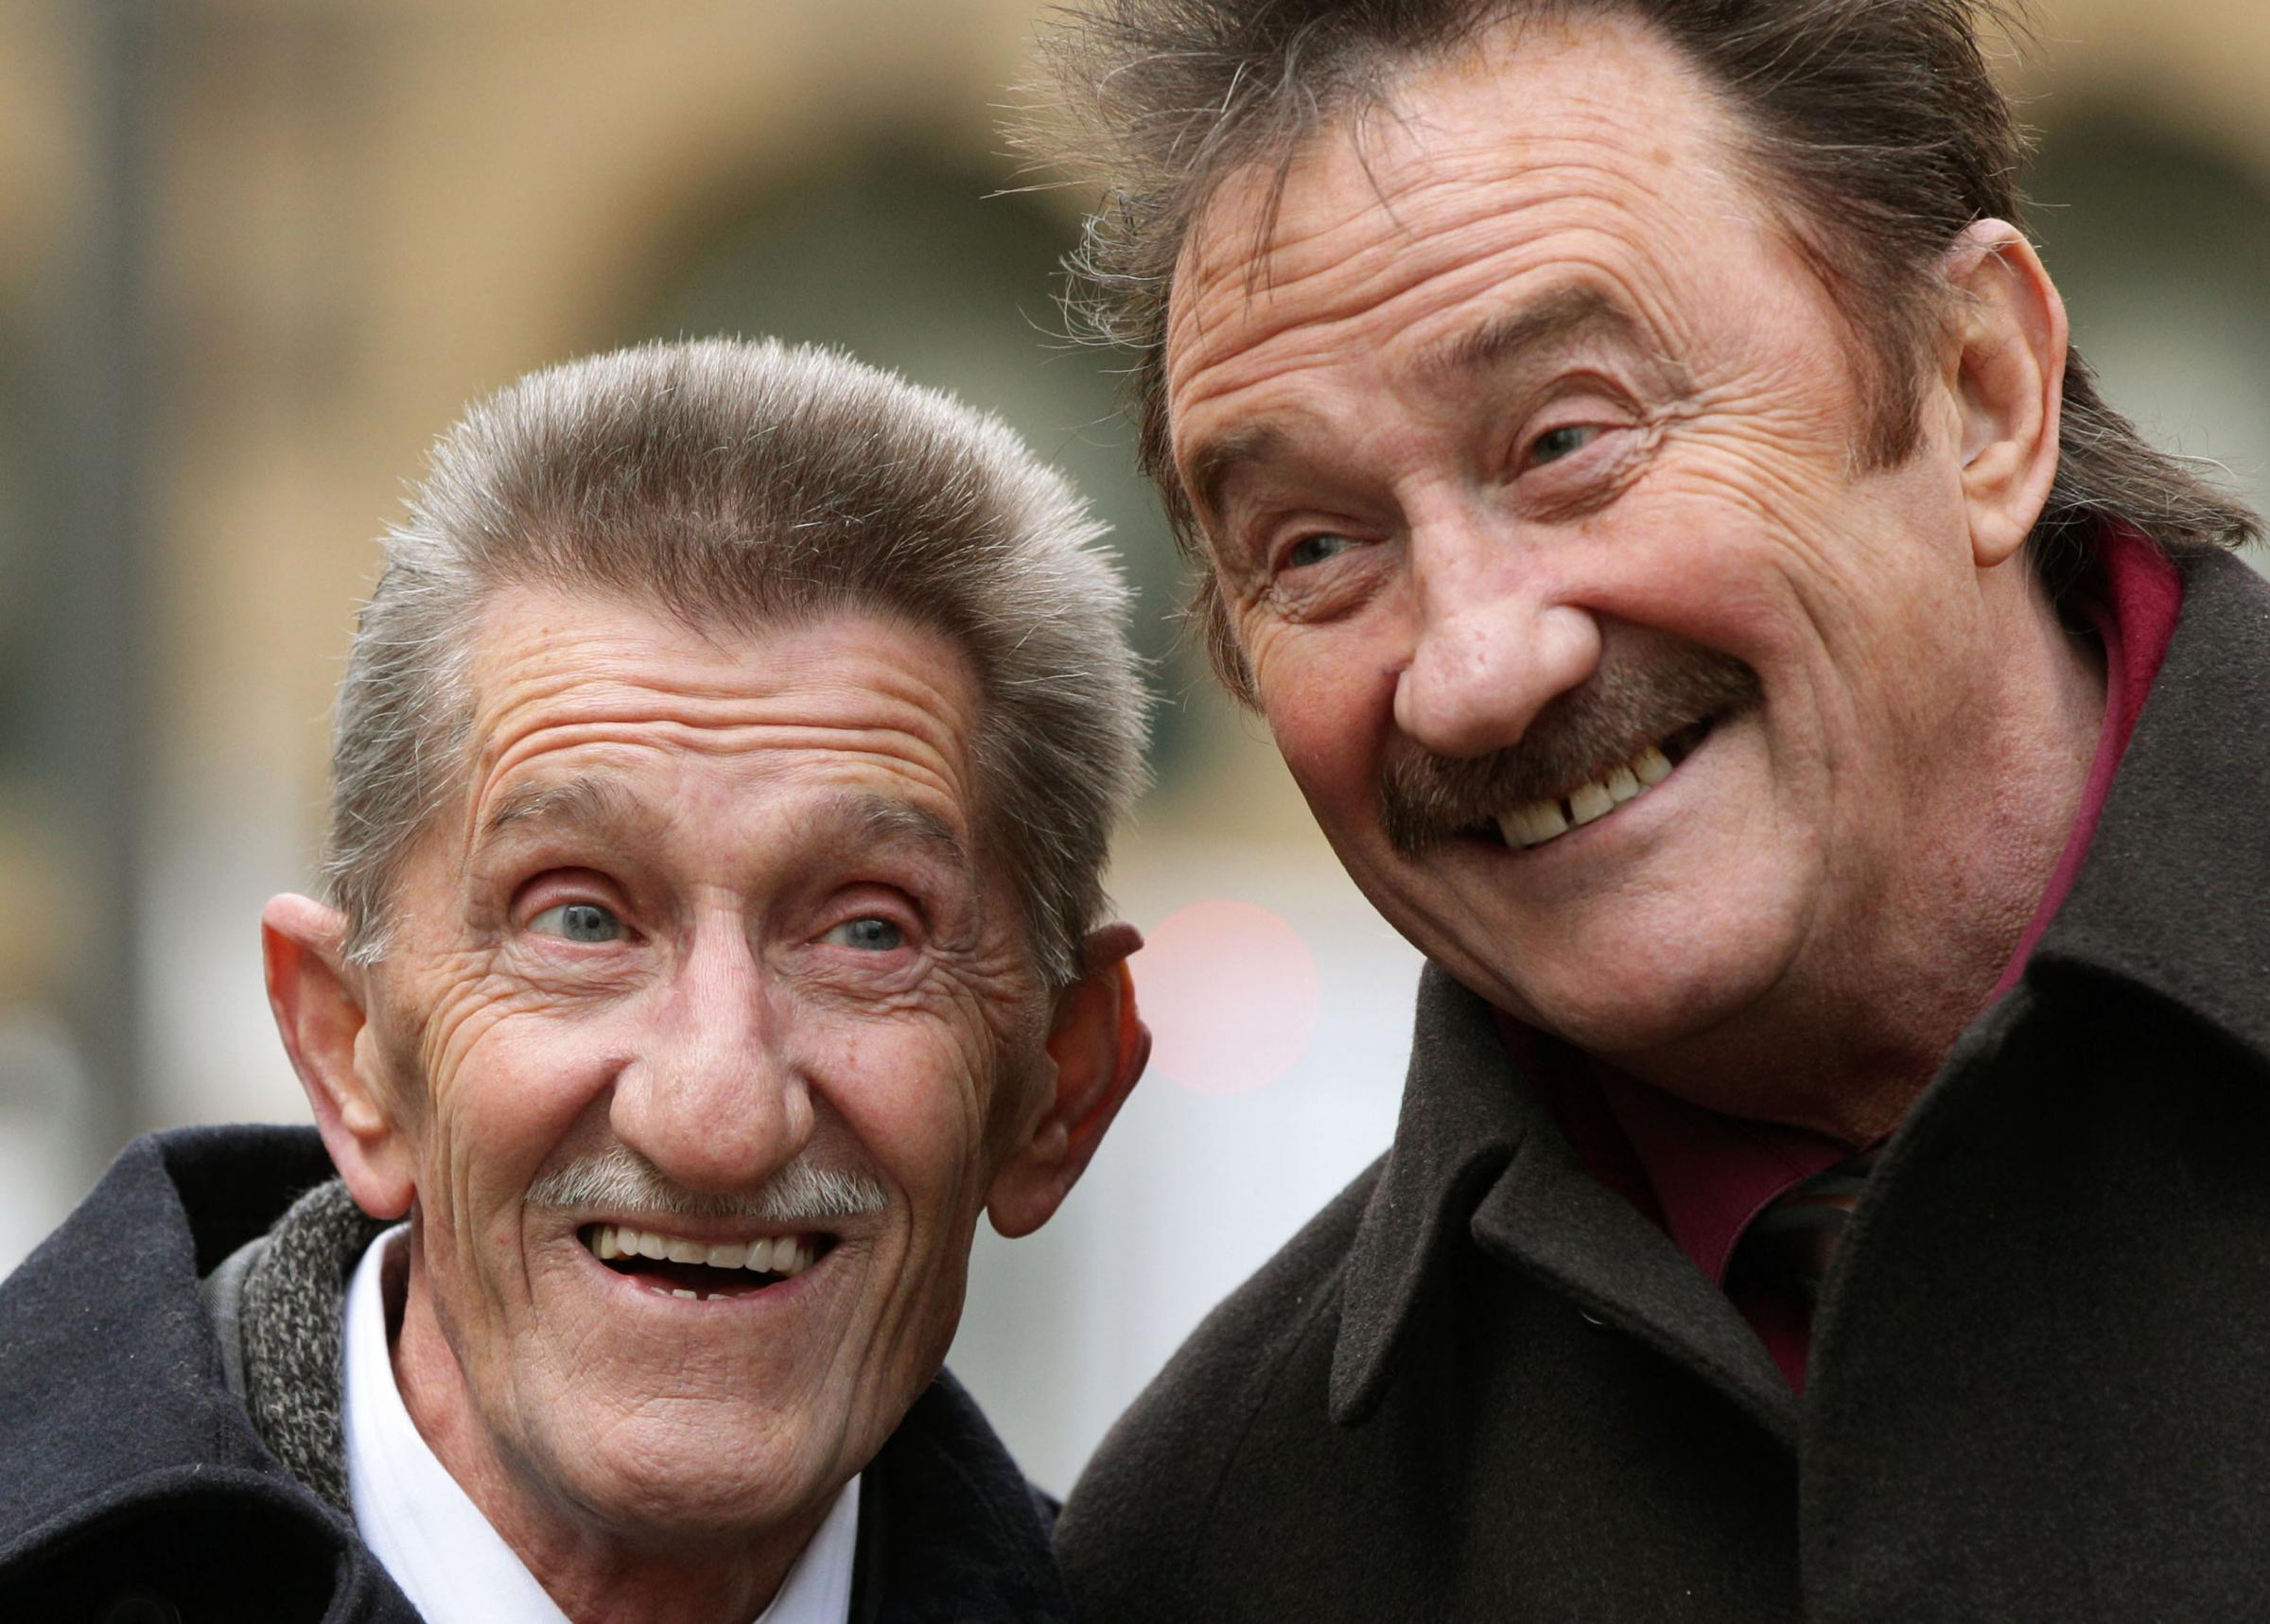 A clip of Barry Chuckle in ChuckleVision